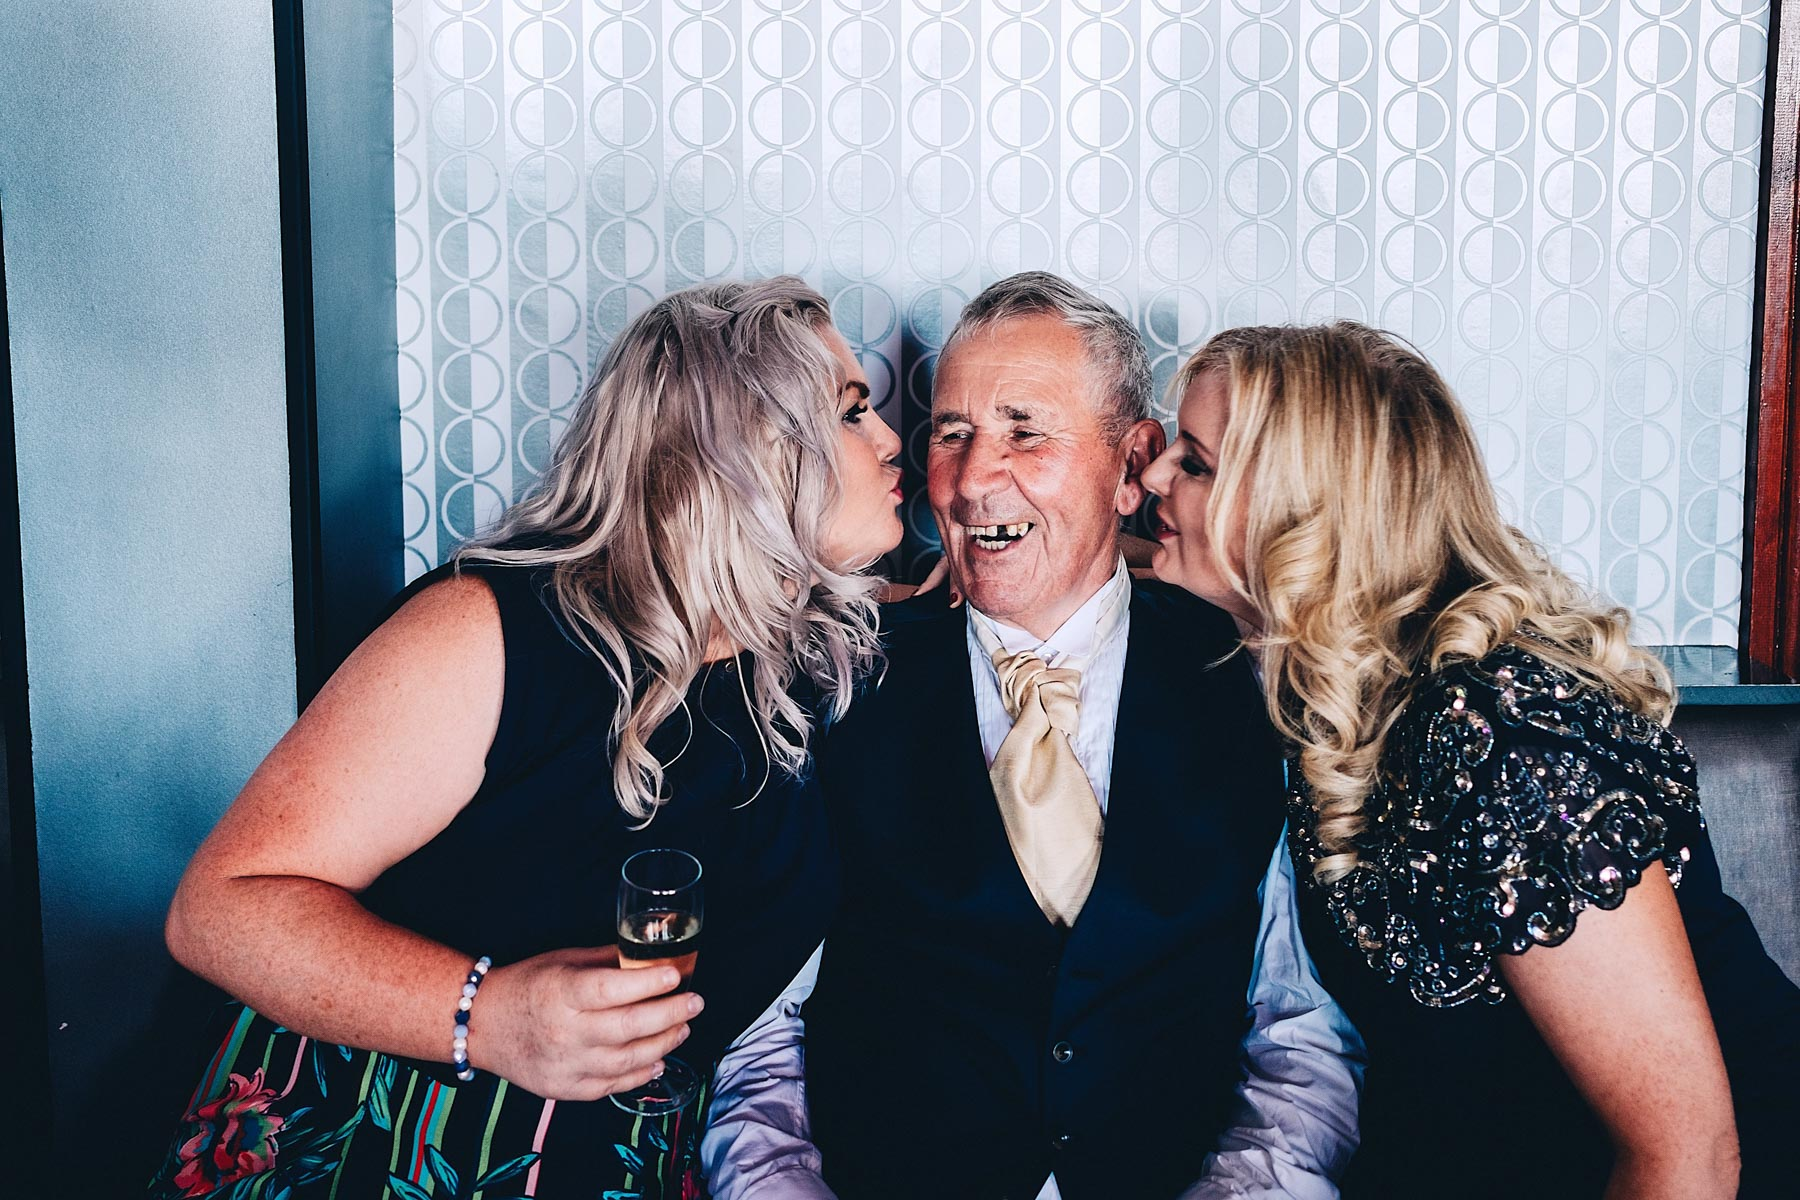 Old man laughs while two younger women kiss him